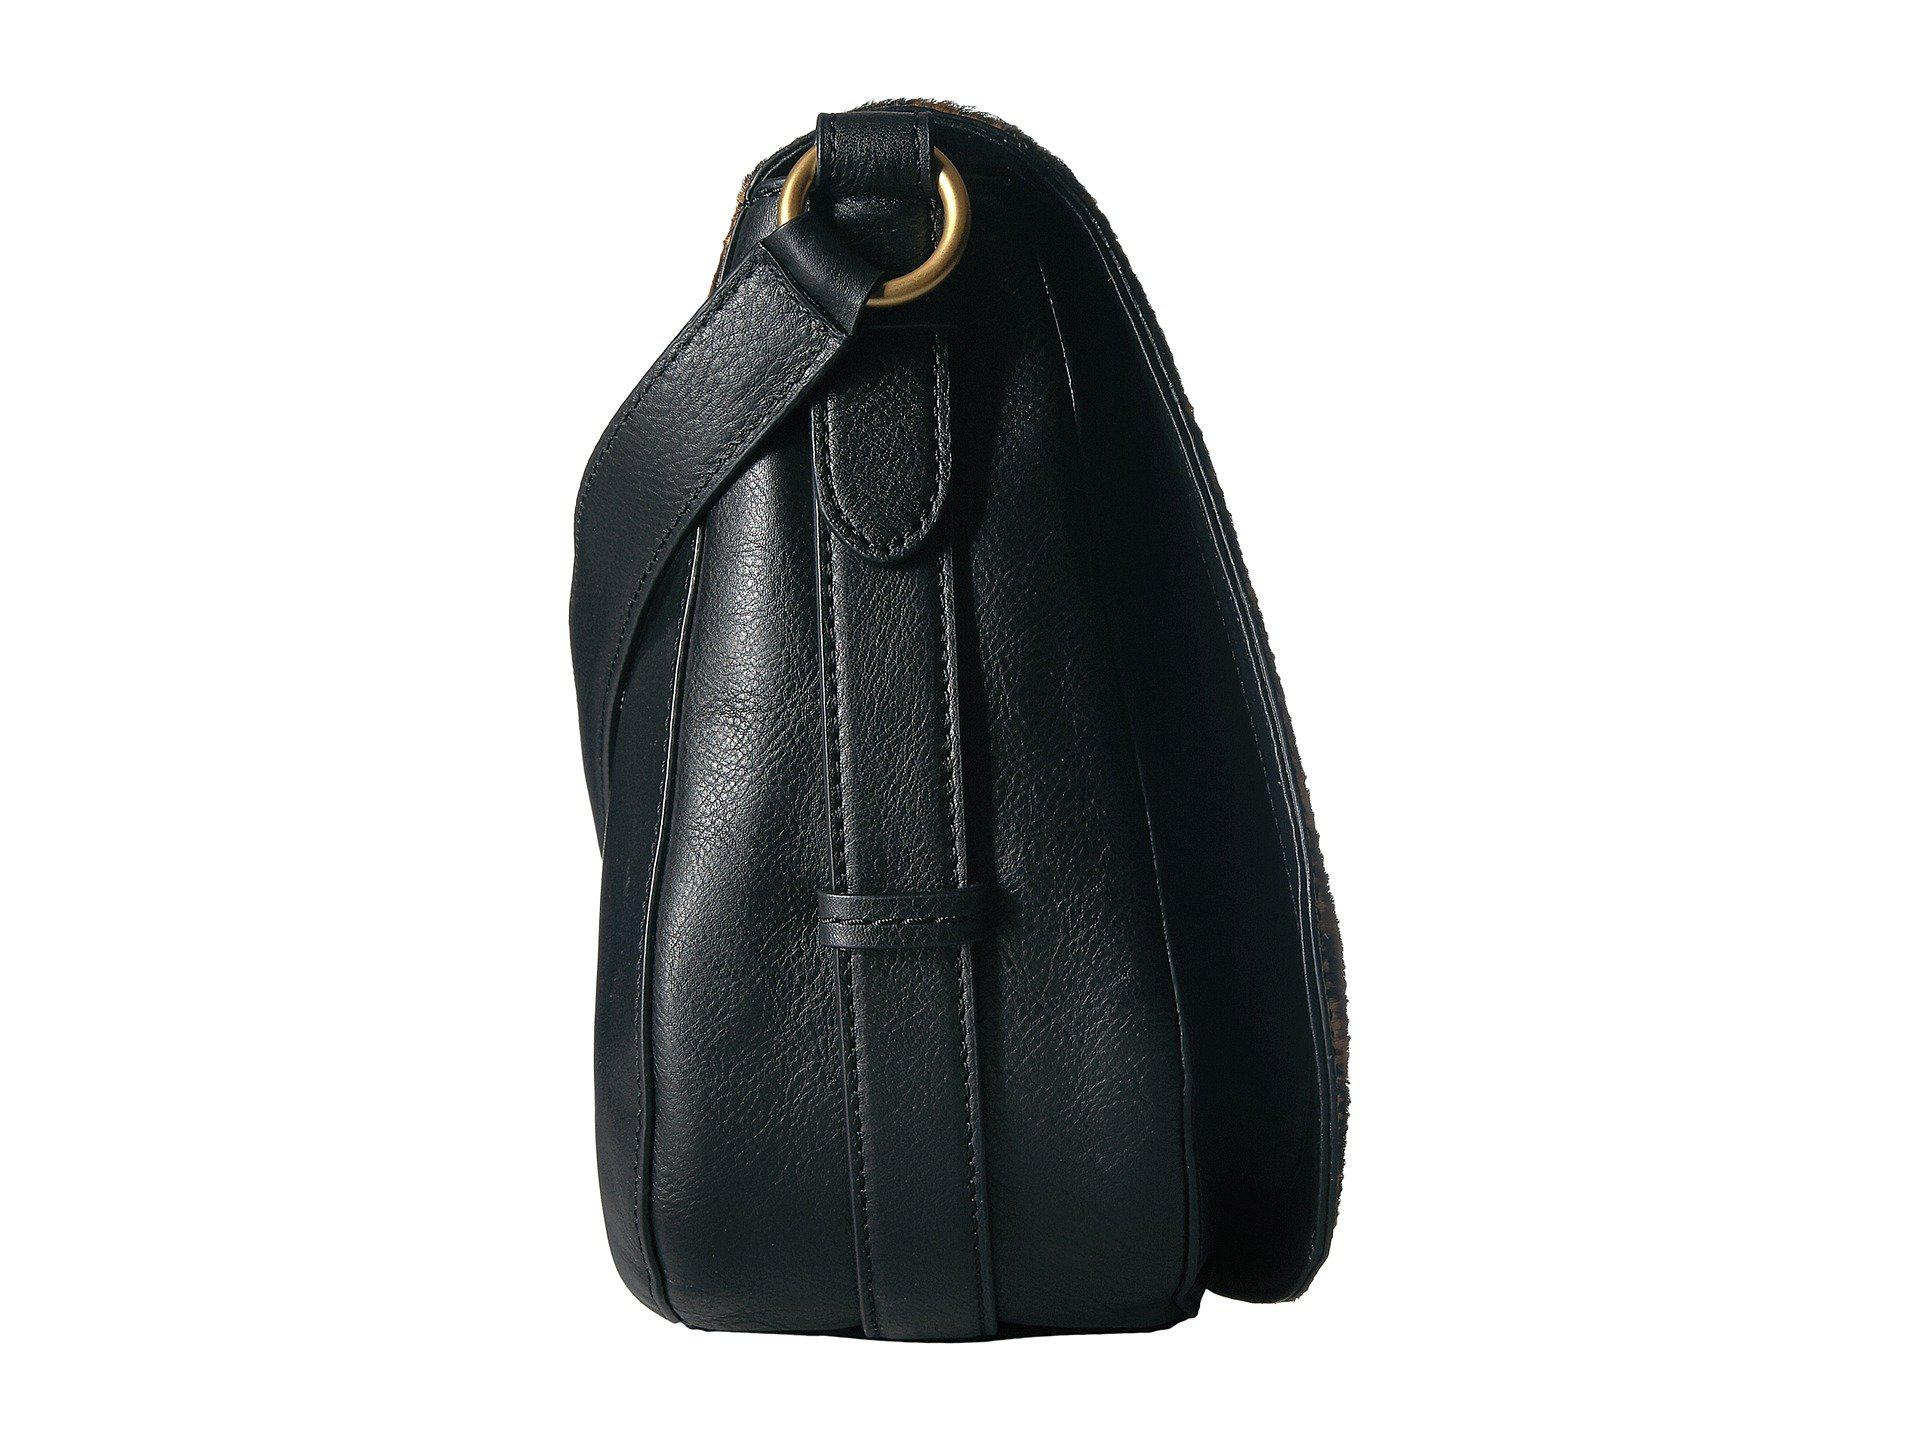 Lyst - Lauren by Ralph Lauren Glennmore Larisa Saddle Bag in Black e63d0eba52aa3